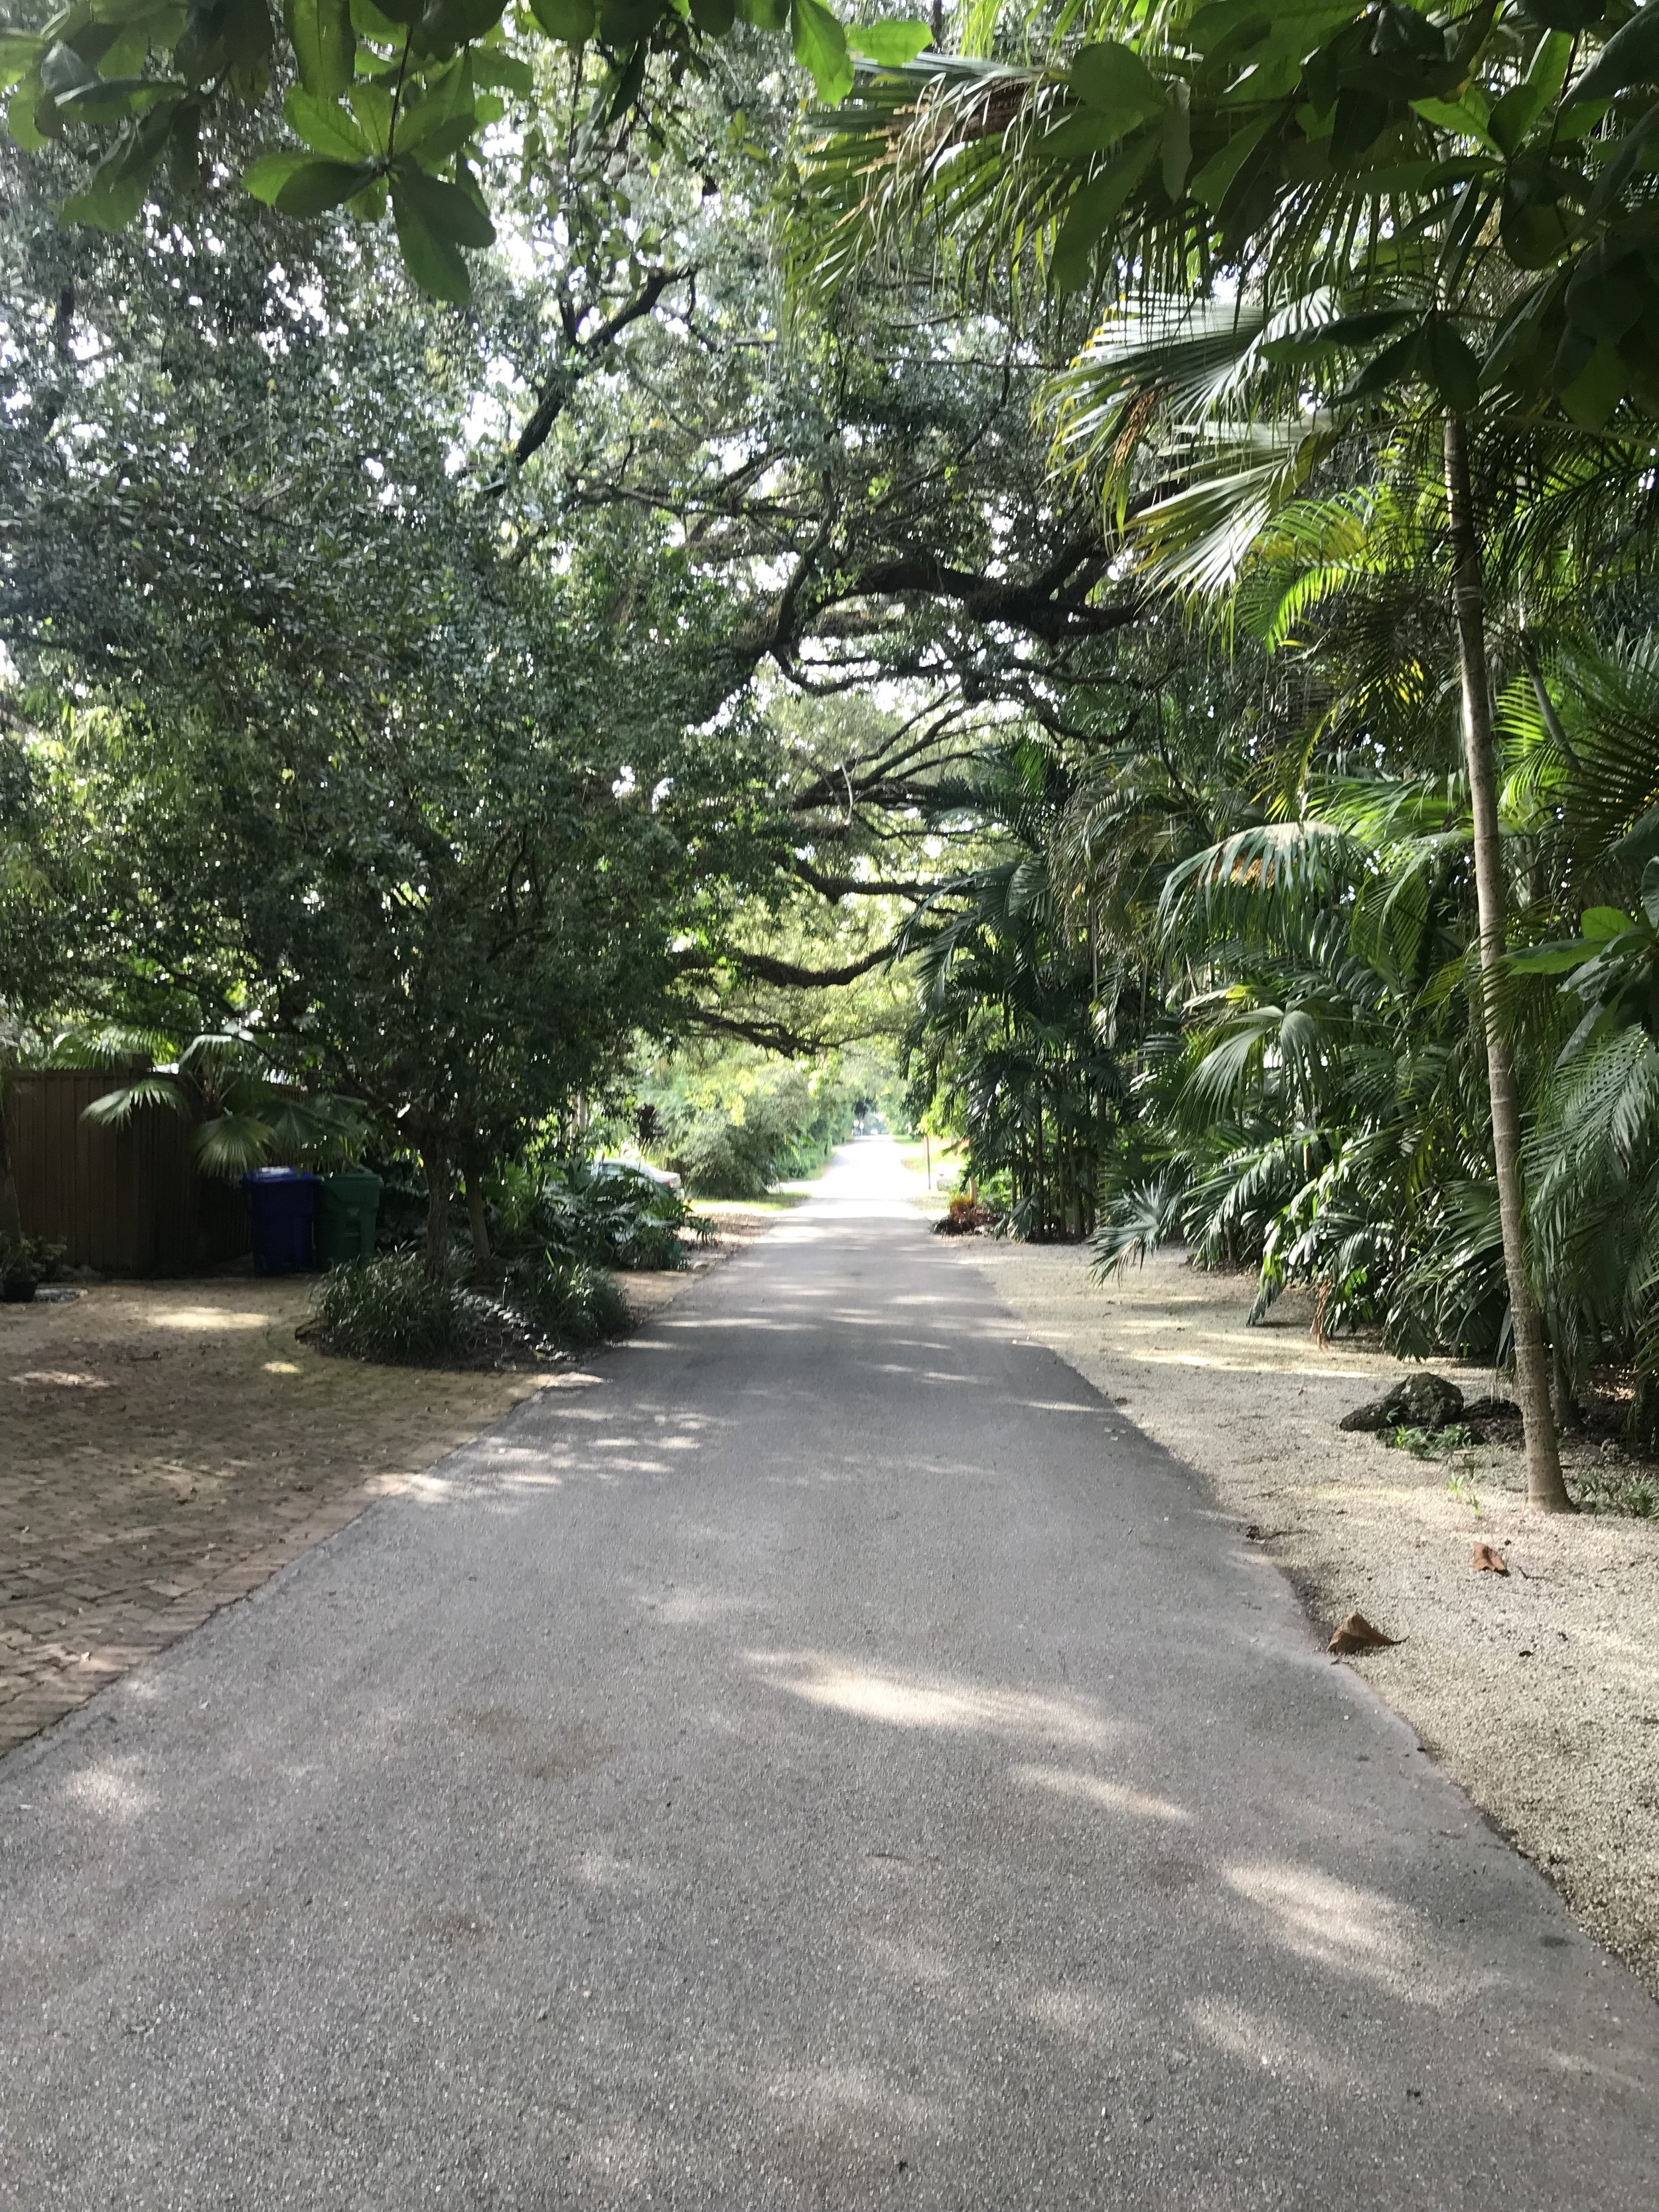 Canopied streets in the Grove.